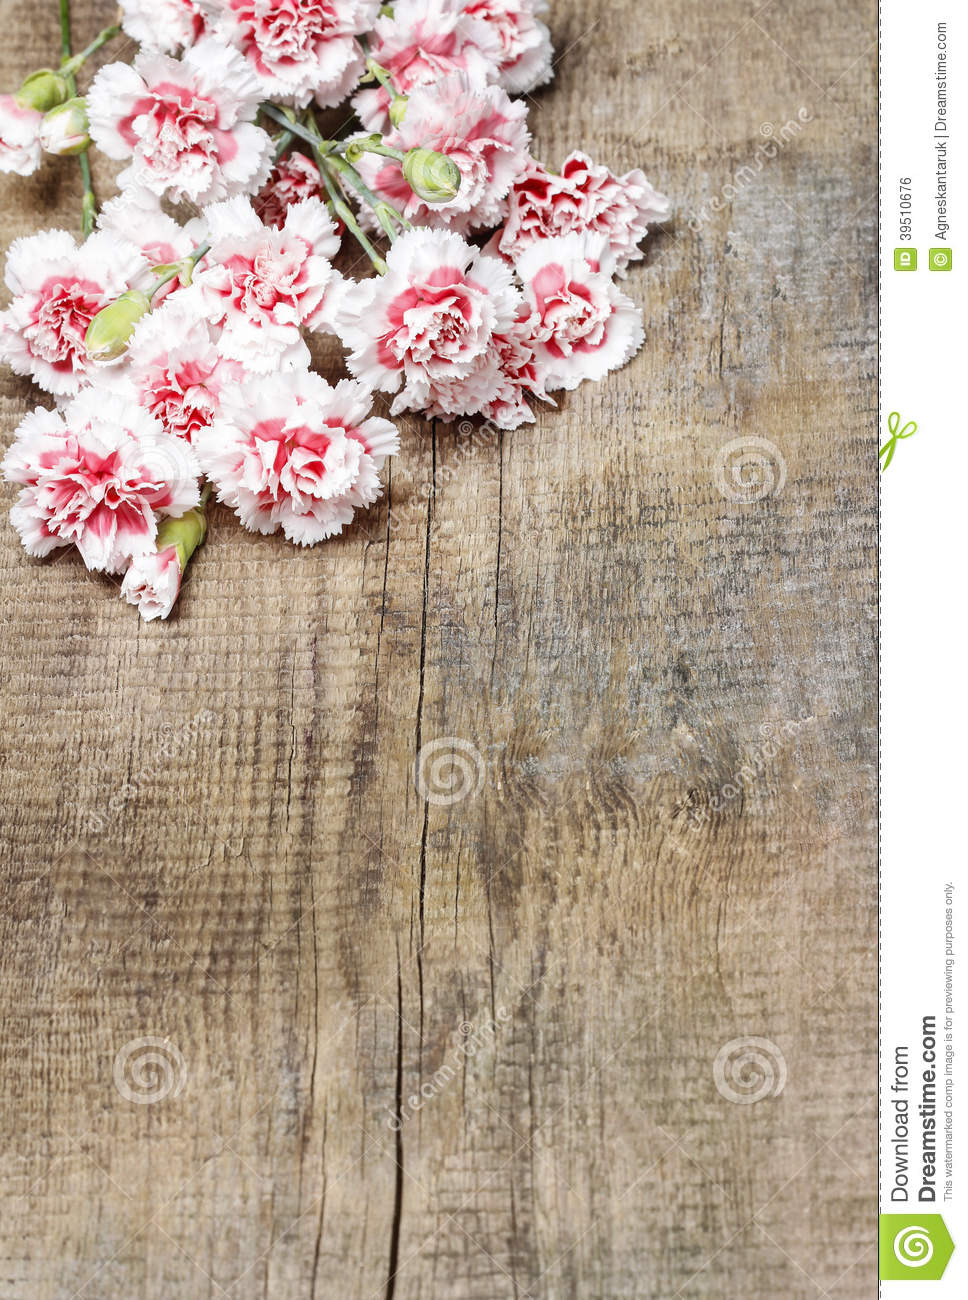 Red and white carnations on wooden table